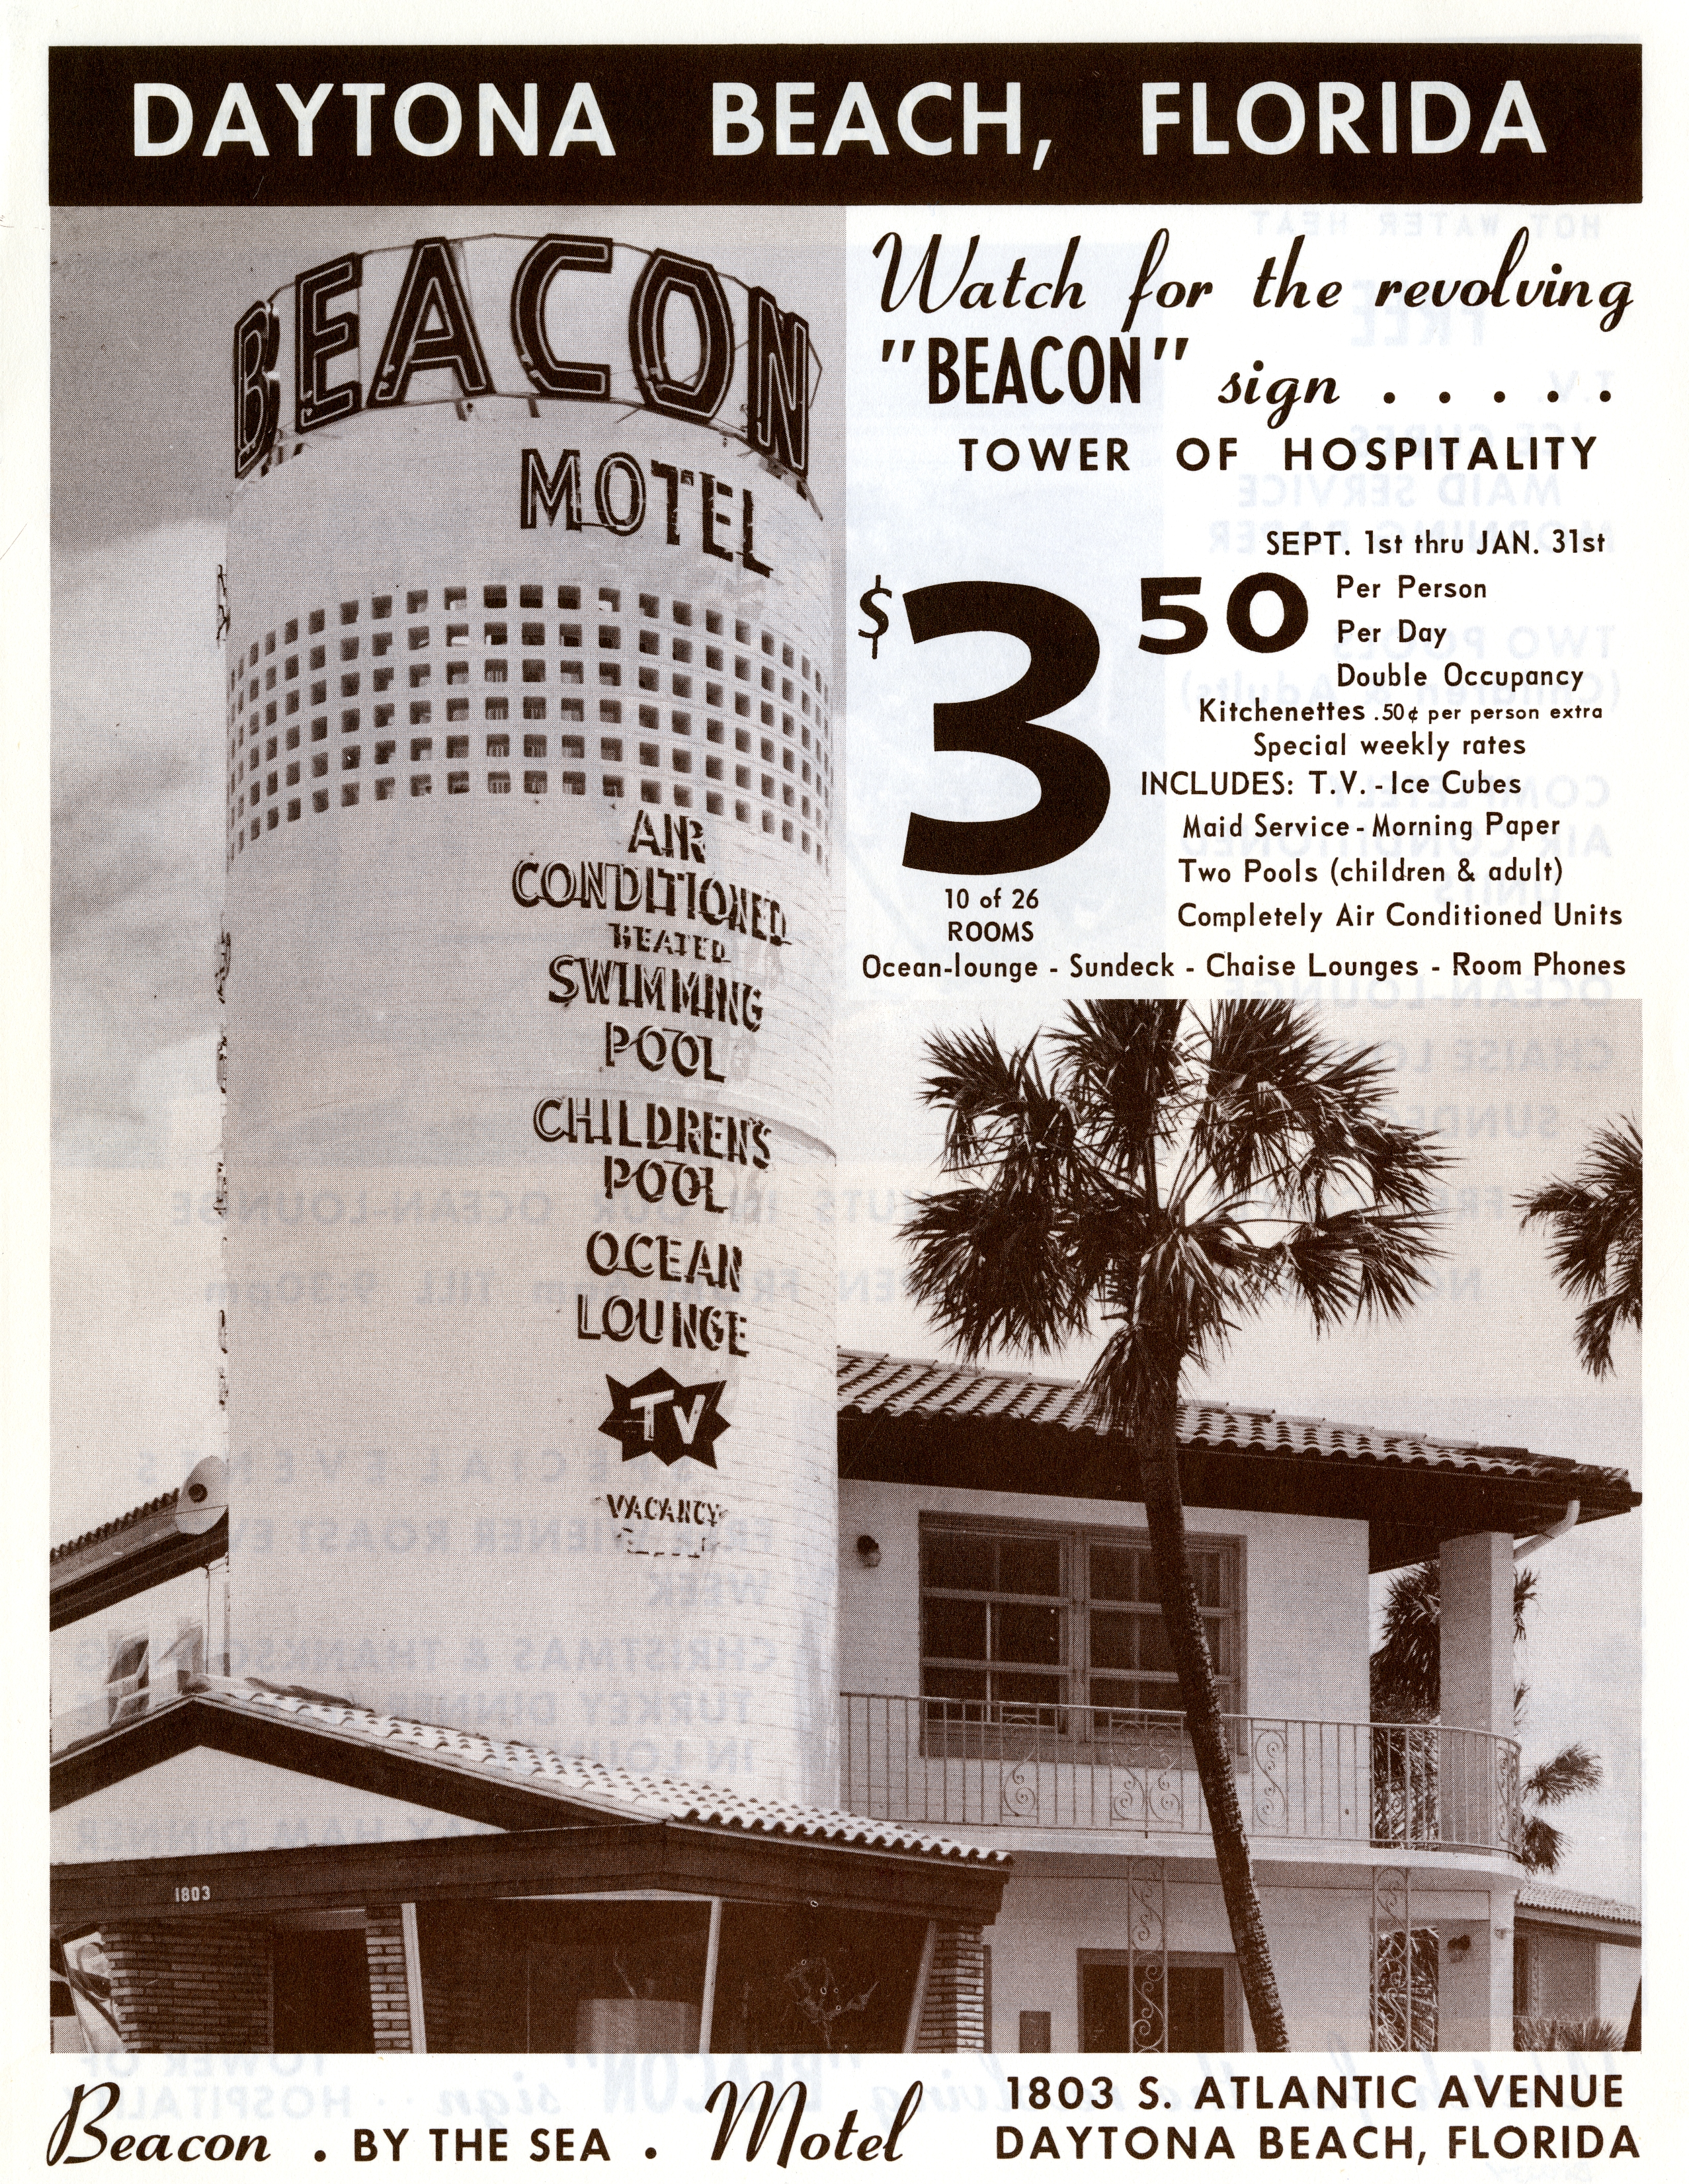 Beacon Motel, Daytona Beach, Florida.